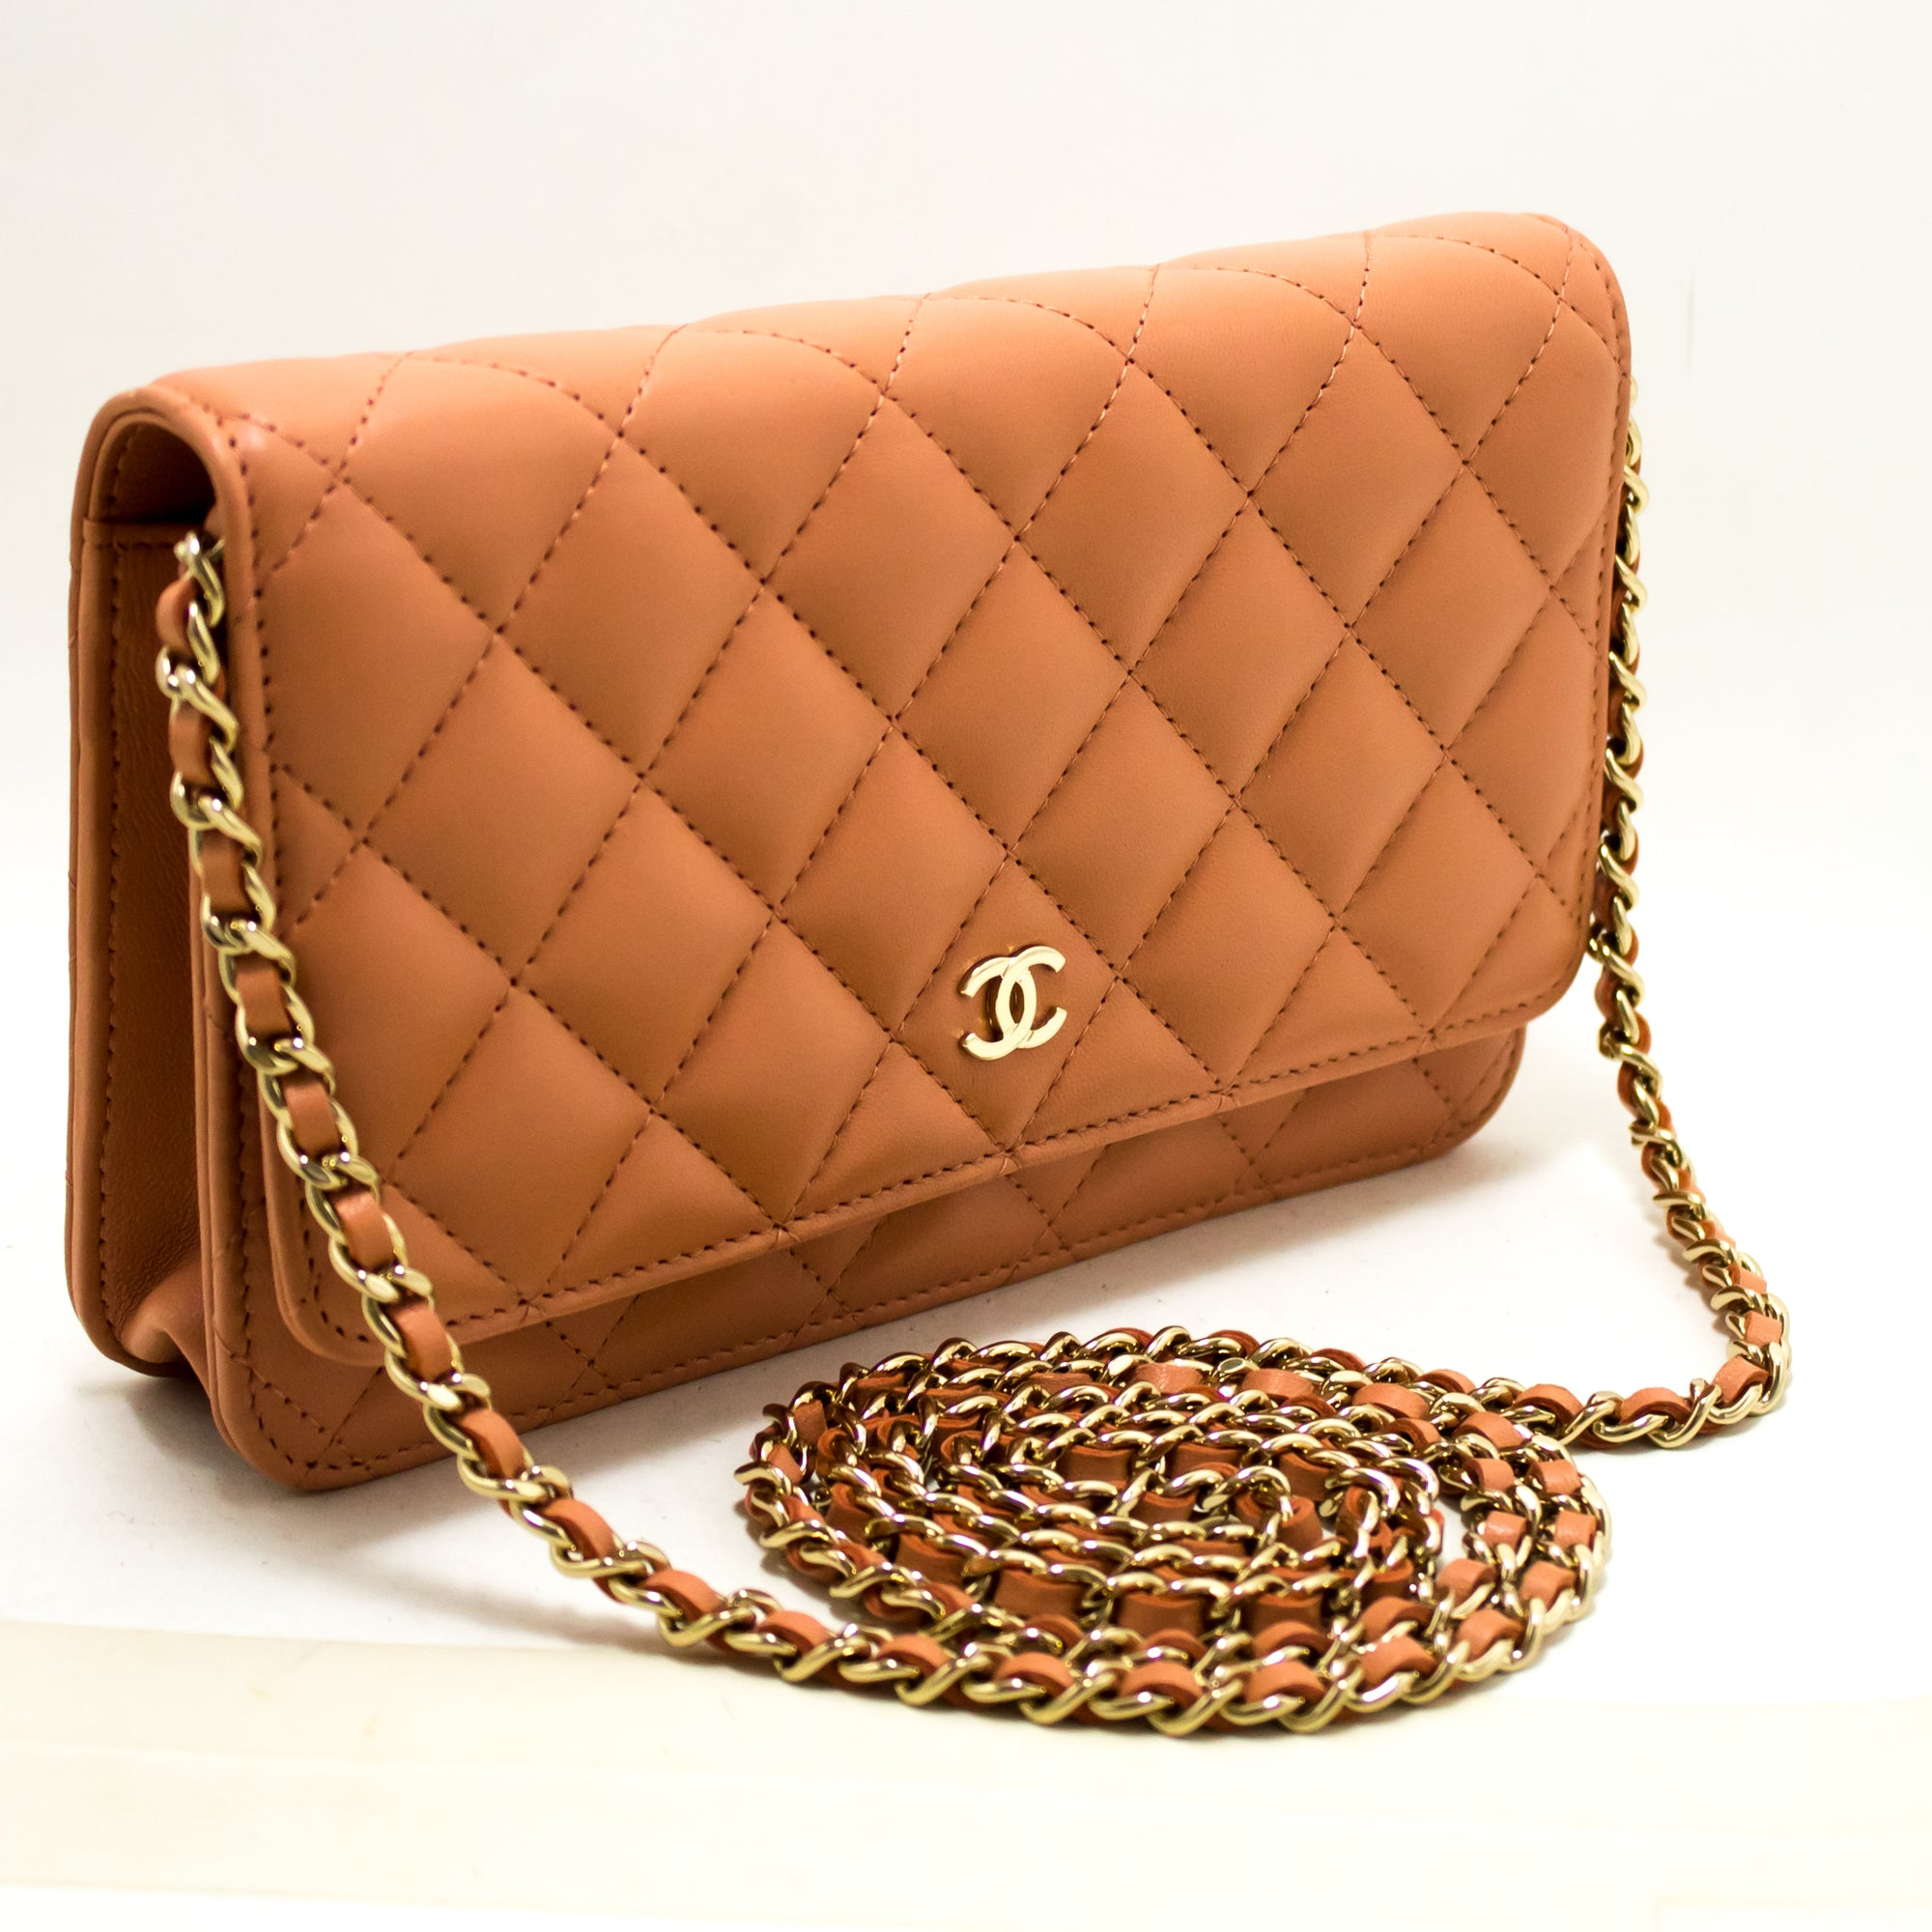 36fd87df184a75 ... CHANEL Salmon Pink Wallet On Chain WOC Shoulder Bag Crossbody Gold  p90-anel-hannari ...